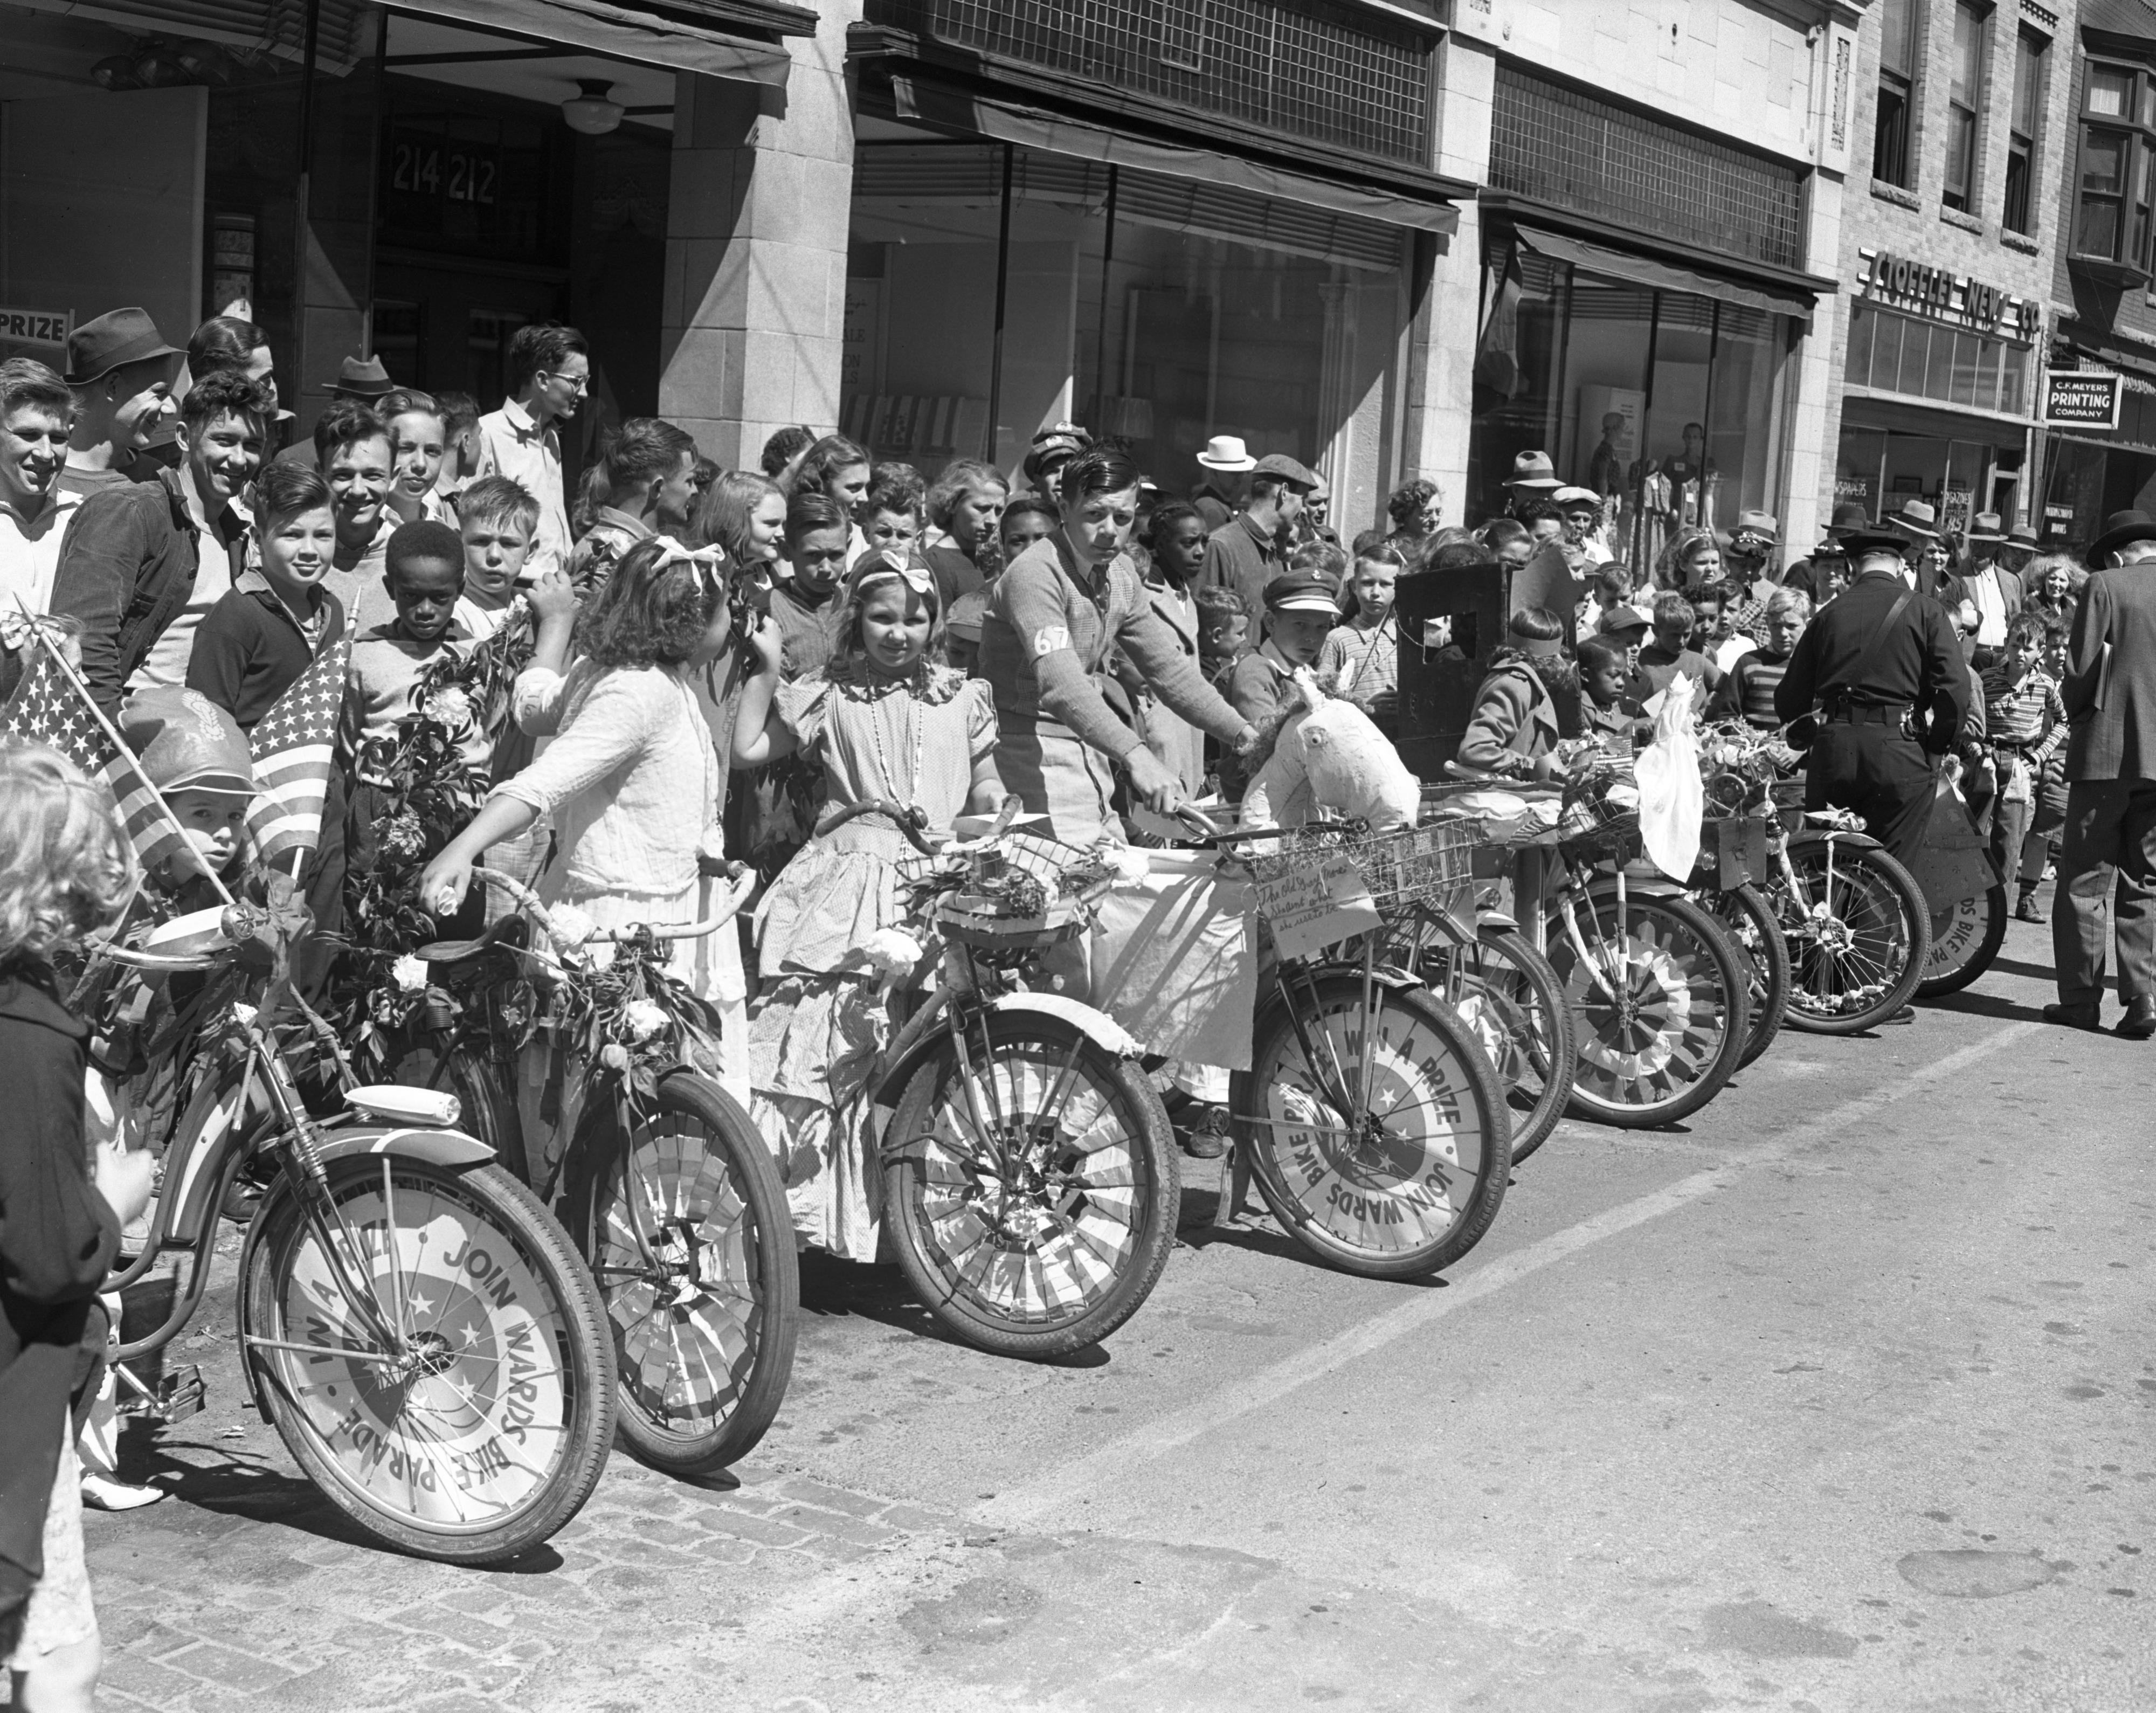 Montgomery Ward's Bicycle Parade, 1940 image